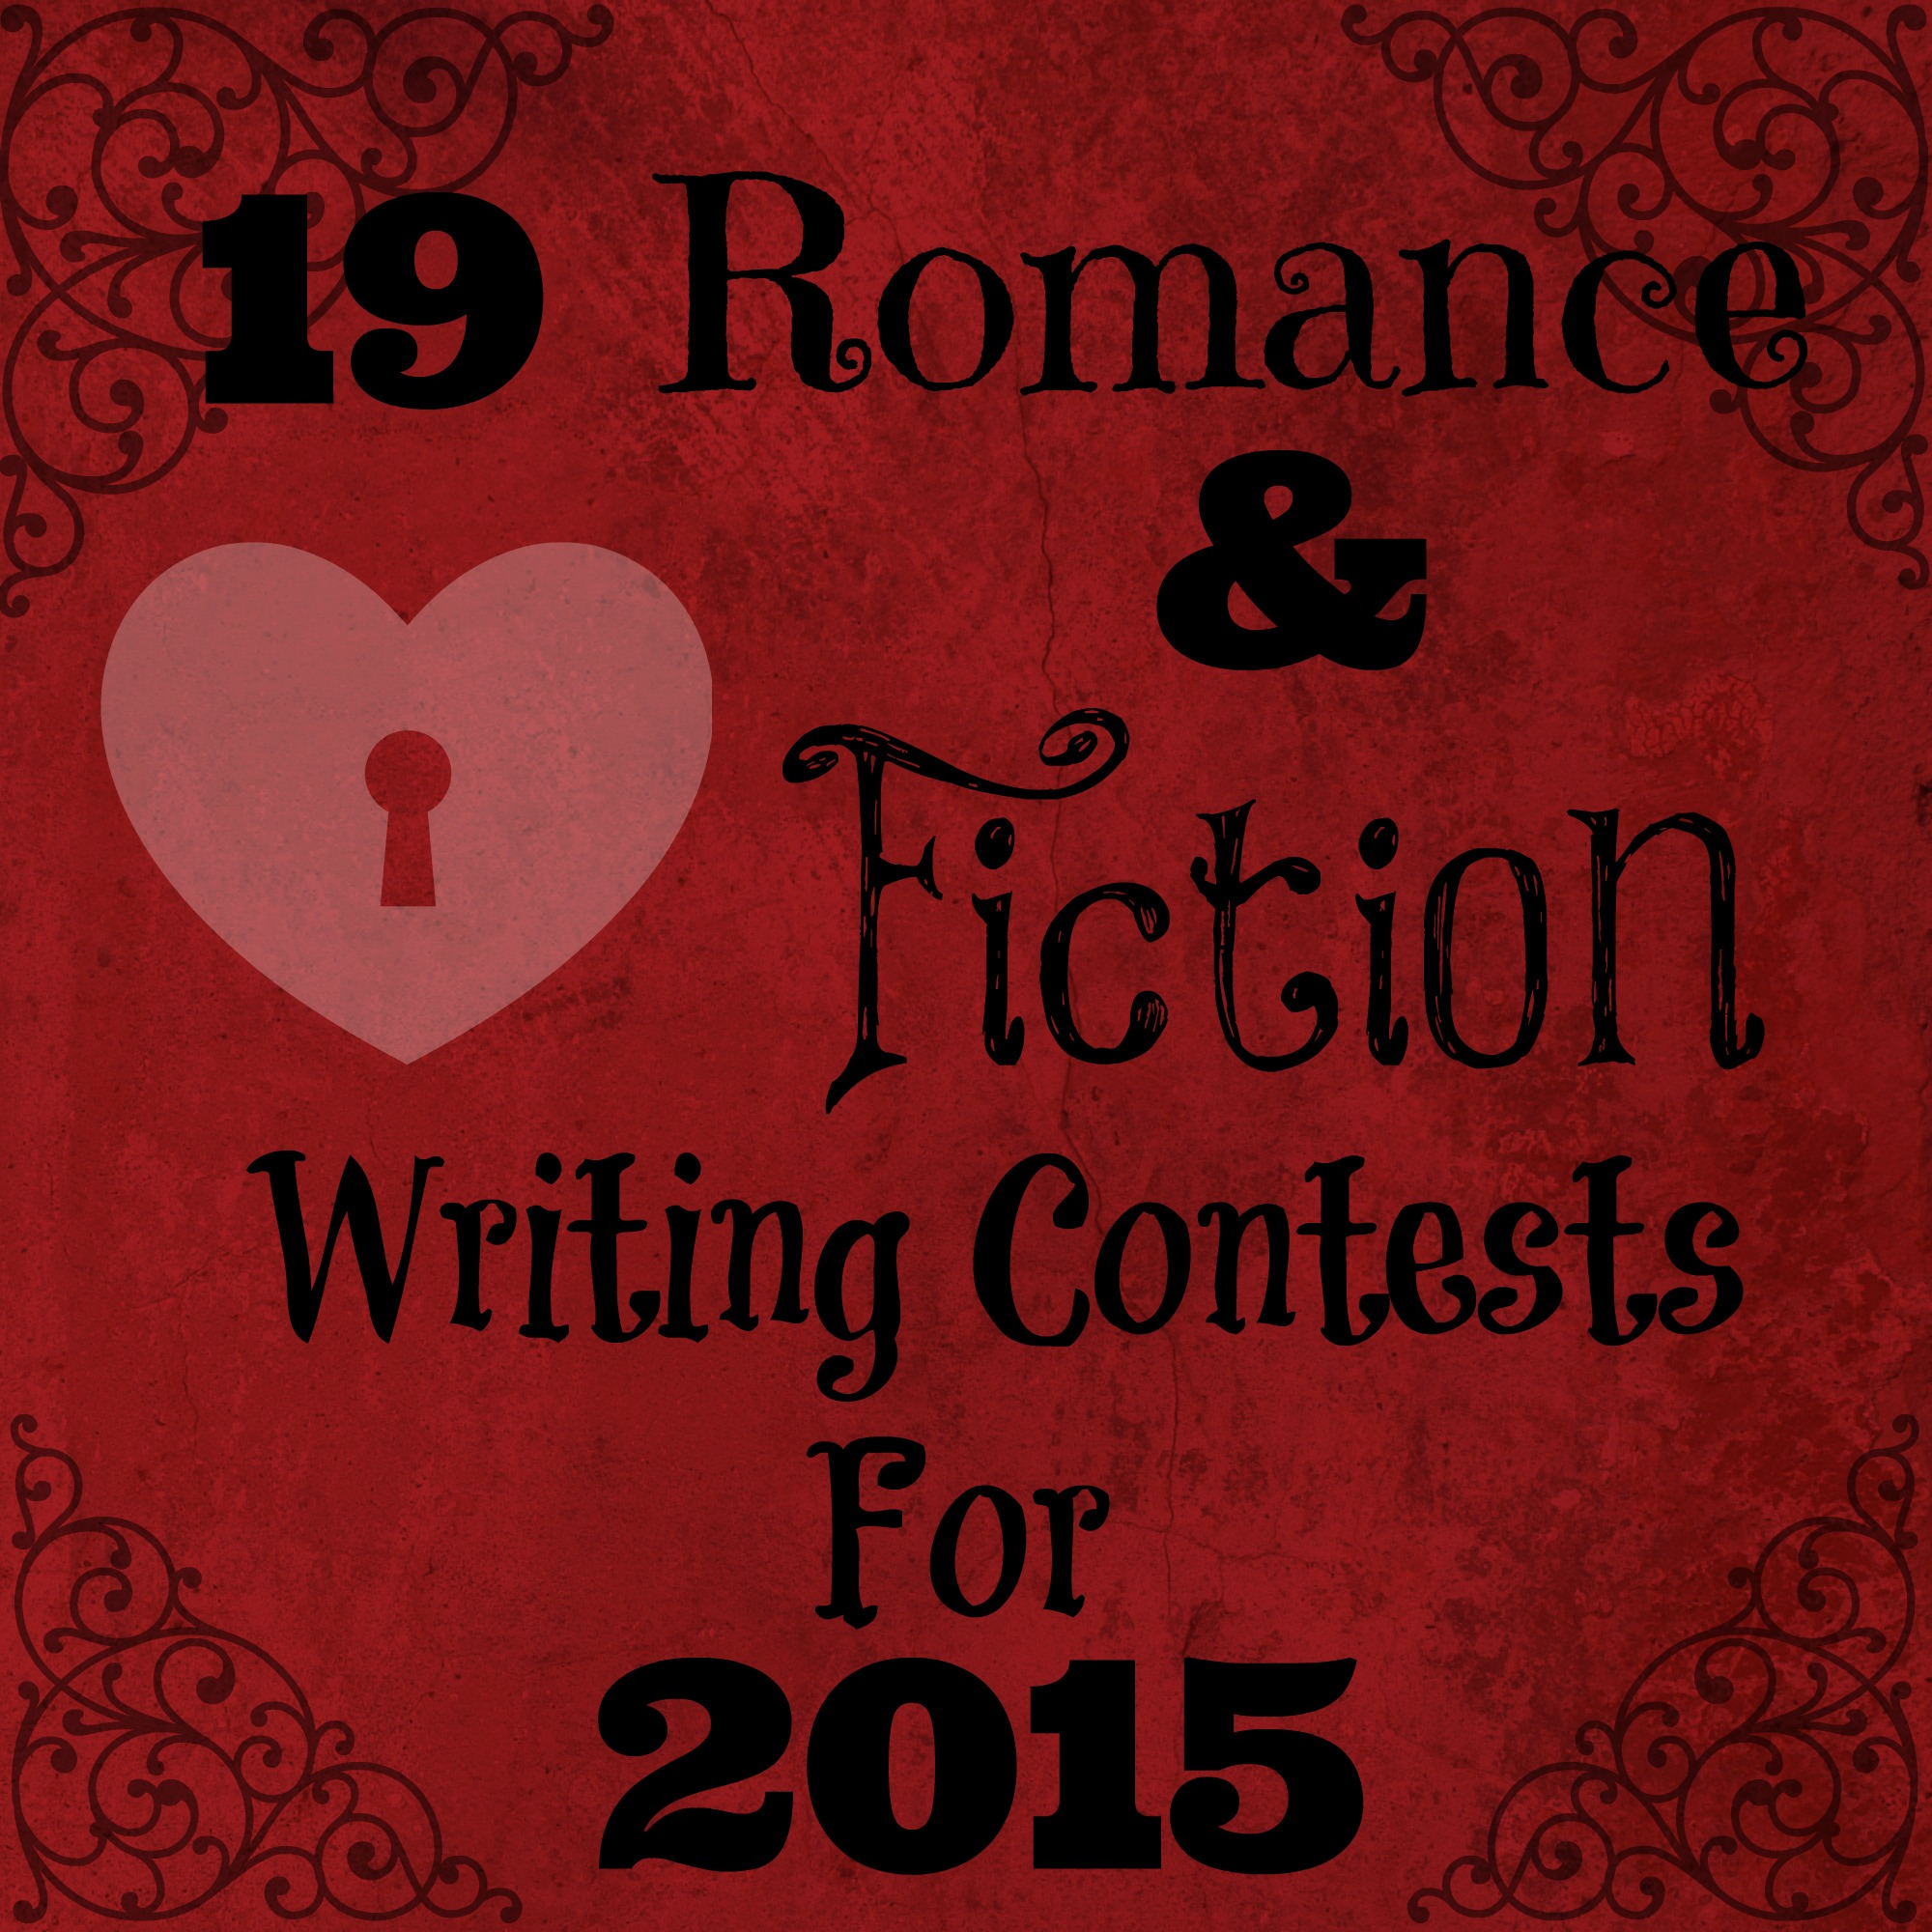 fantasy writing contests